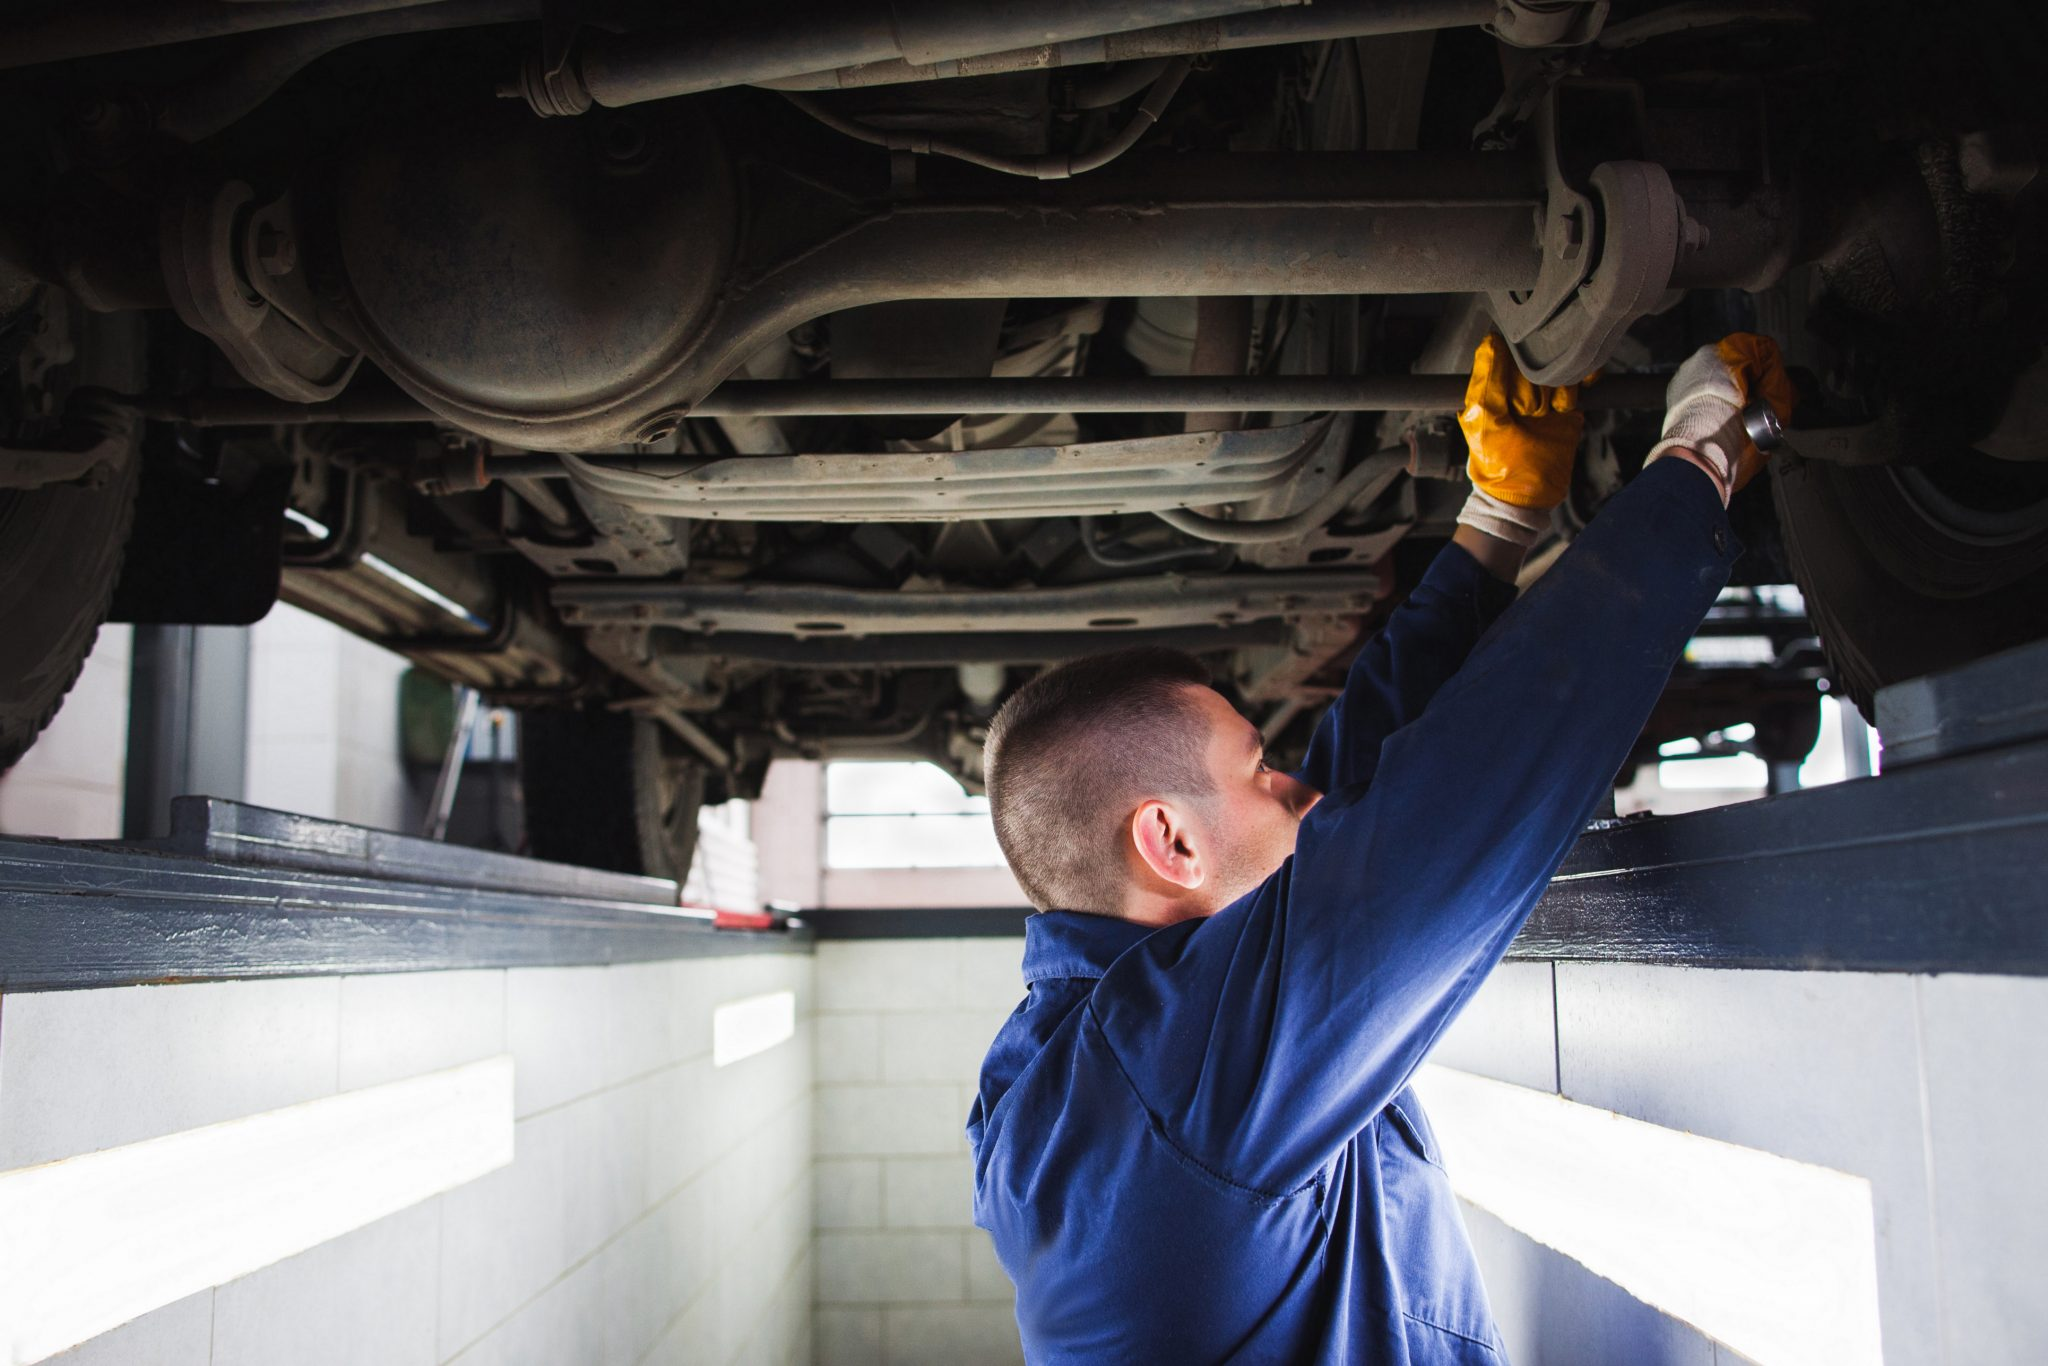 Vehicle Repair Shop in Chicago with Certified Technicians - Your Local Dealer Alternative at Milito's Auto Repair